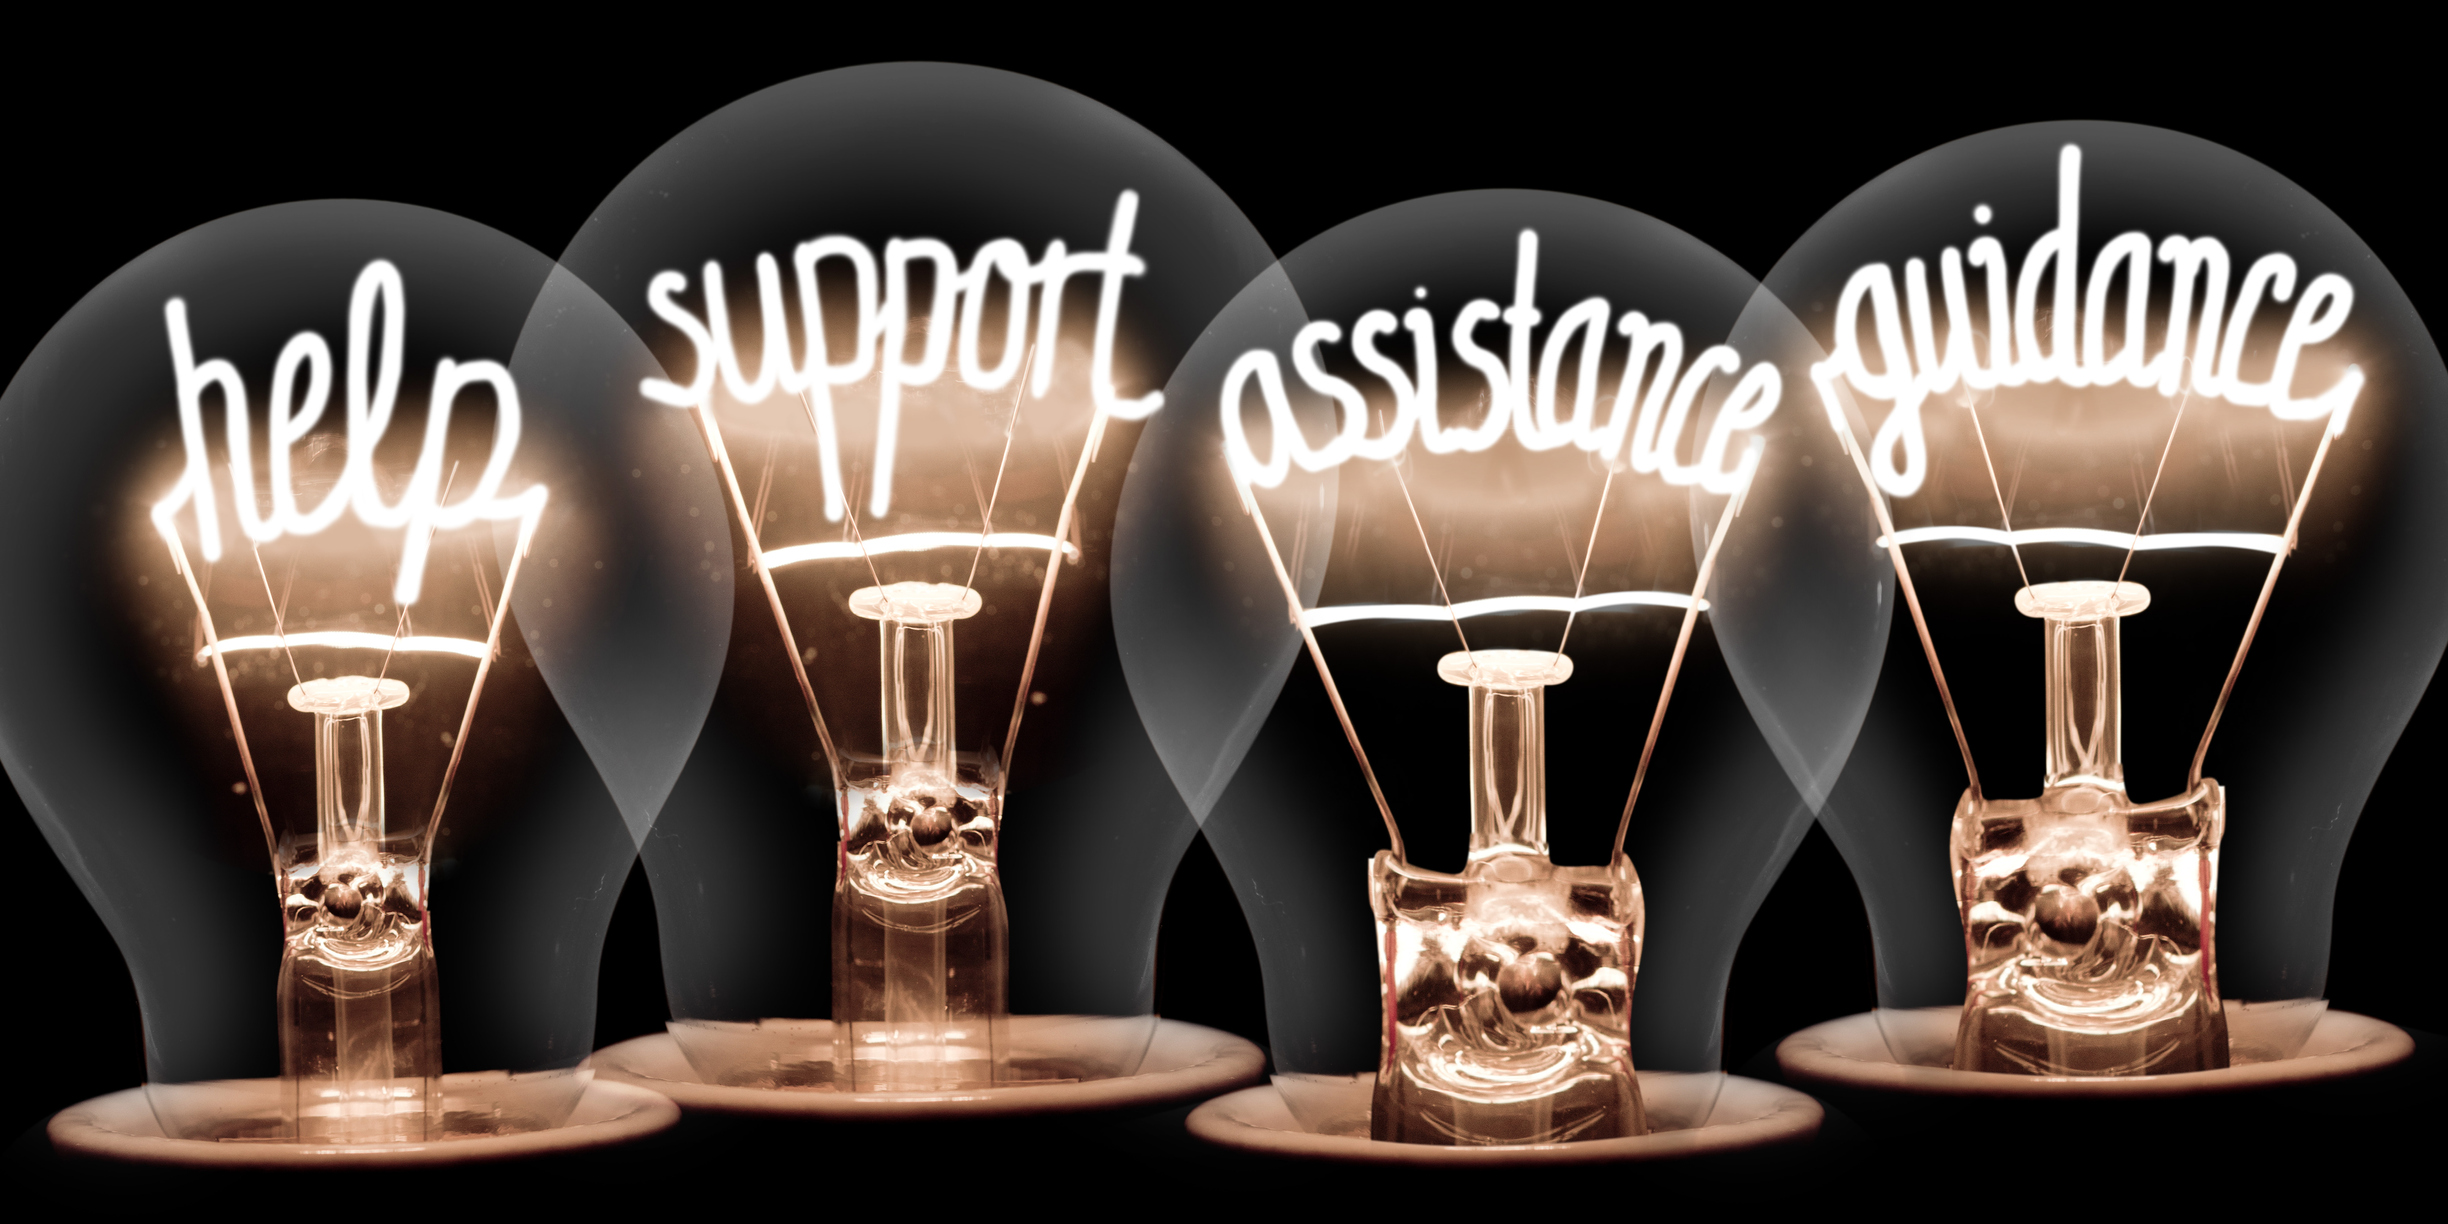 Light Bulbs - helo, support, assistance, guidance